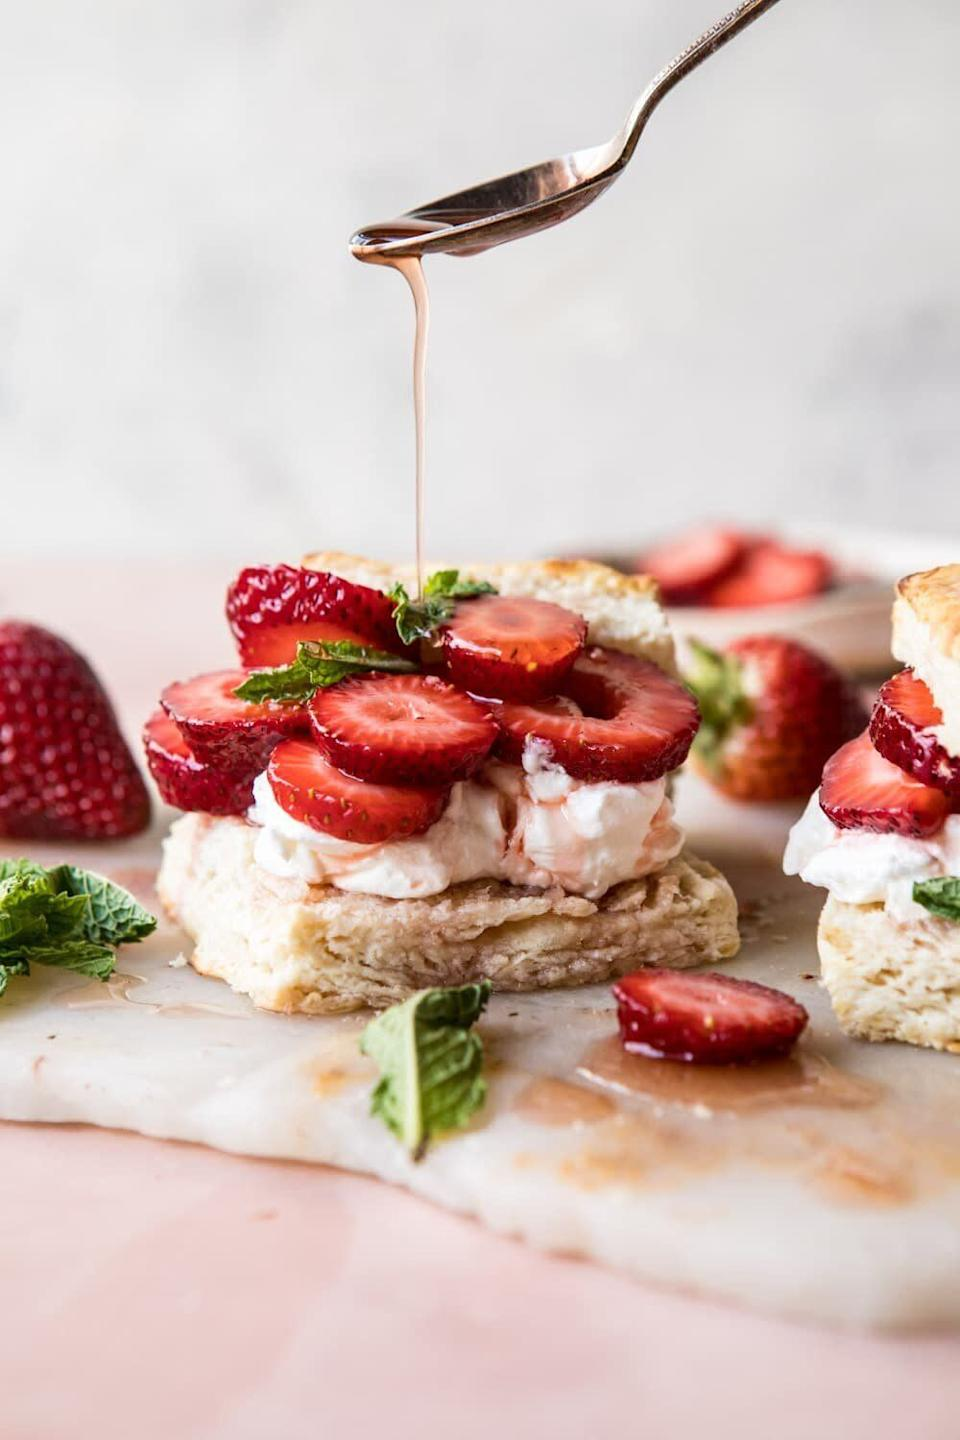 "<a href=""https://www.halfbakedharvest.com/strawberry-shortcakes/"" rel=""nofollow noopener"" target=""_blank"" data-ylk=""slk:Strawberry Bourbon Shortcakes from Half Baked Harvest"" class=""link rapid-noclick-resp""><strong>Strawberry Bourbon Shortcakes from Half Baked Harvest</strong></a>"